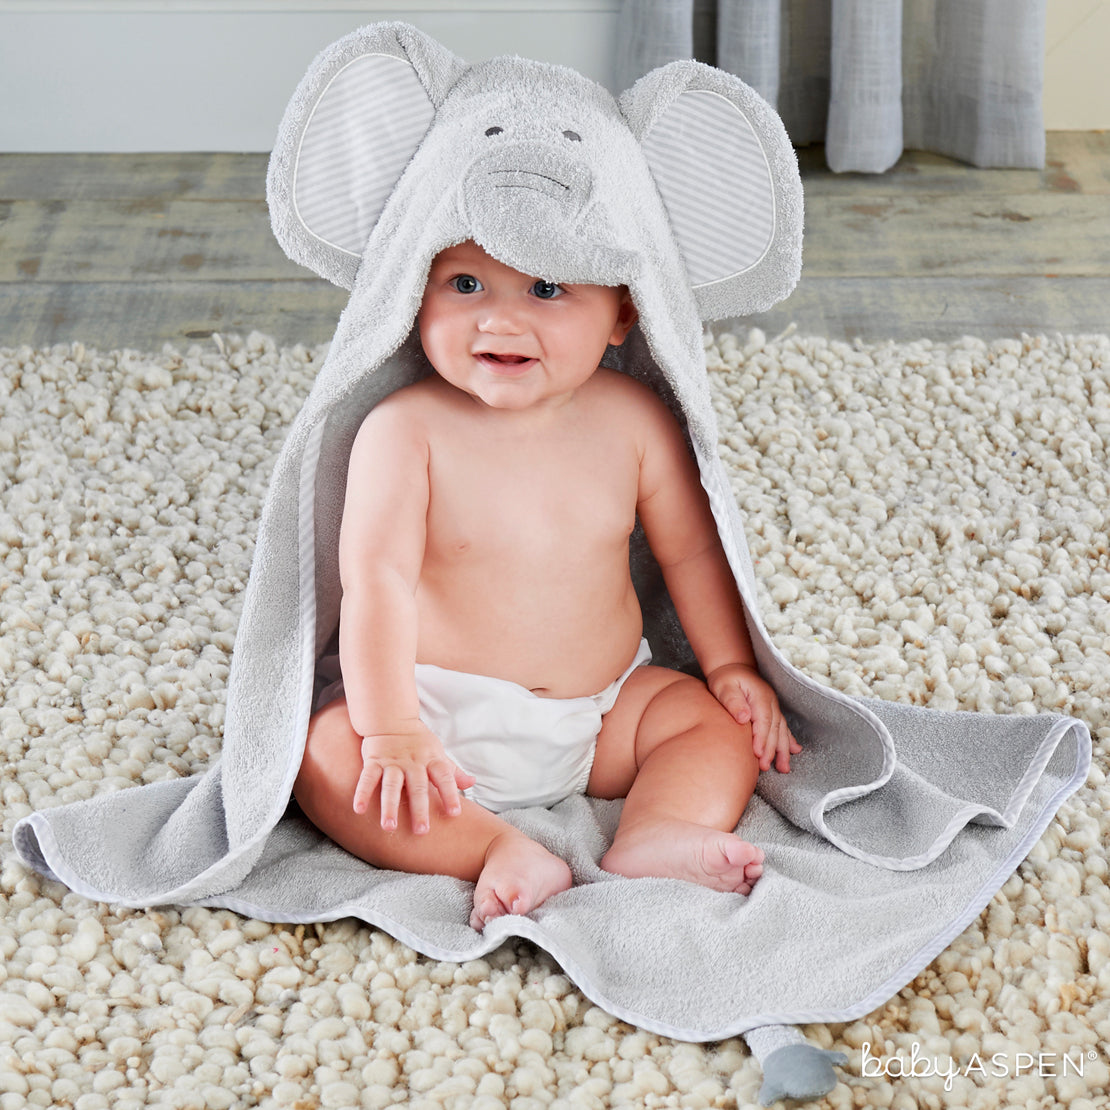 Elephant Hooded Towel | Sweet Elephant Themed Gifts For Your Little Peanut | Baby Aspen